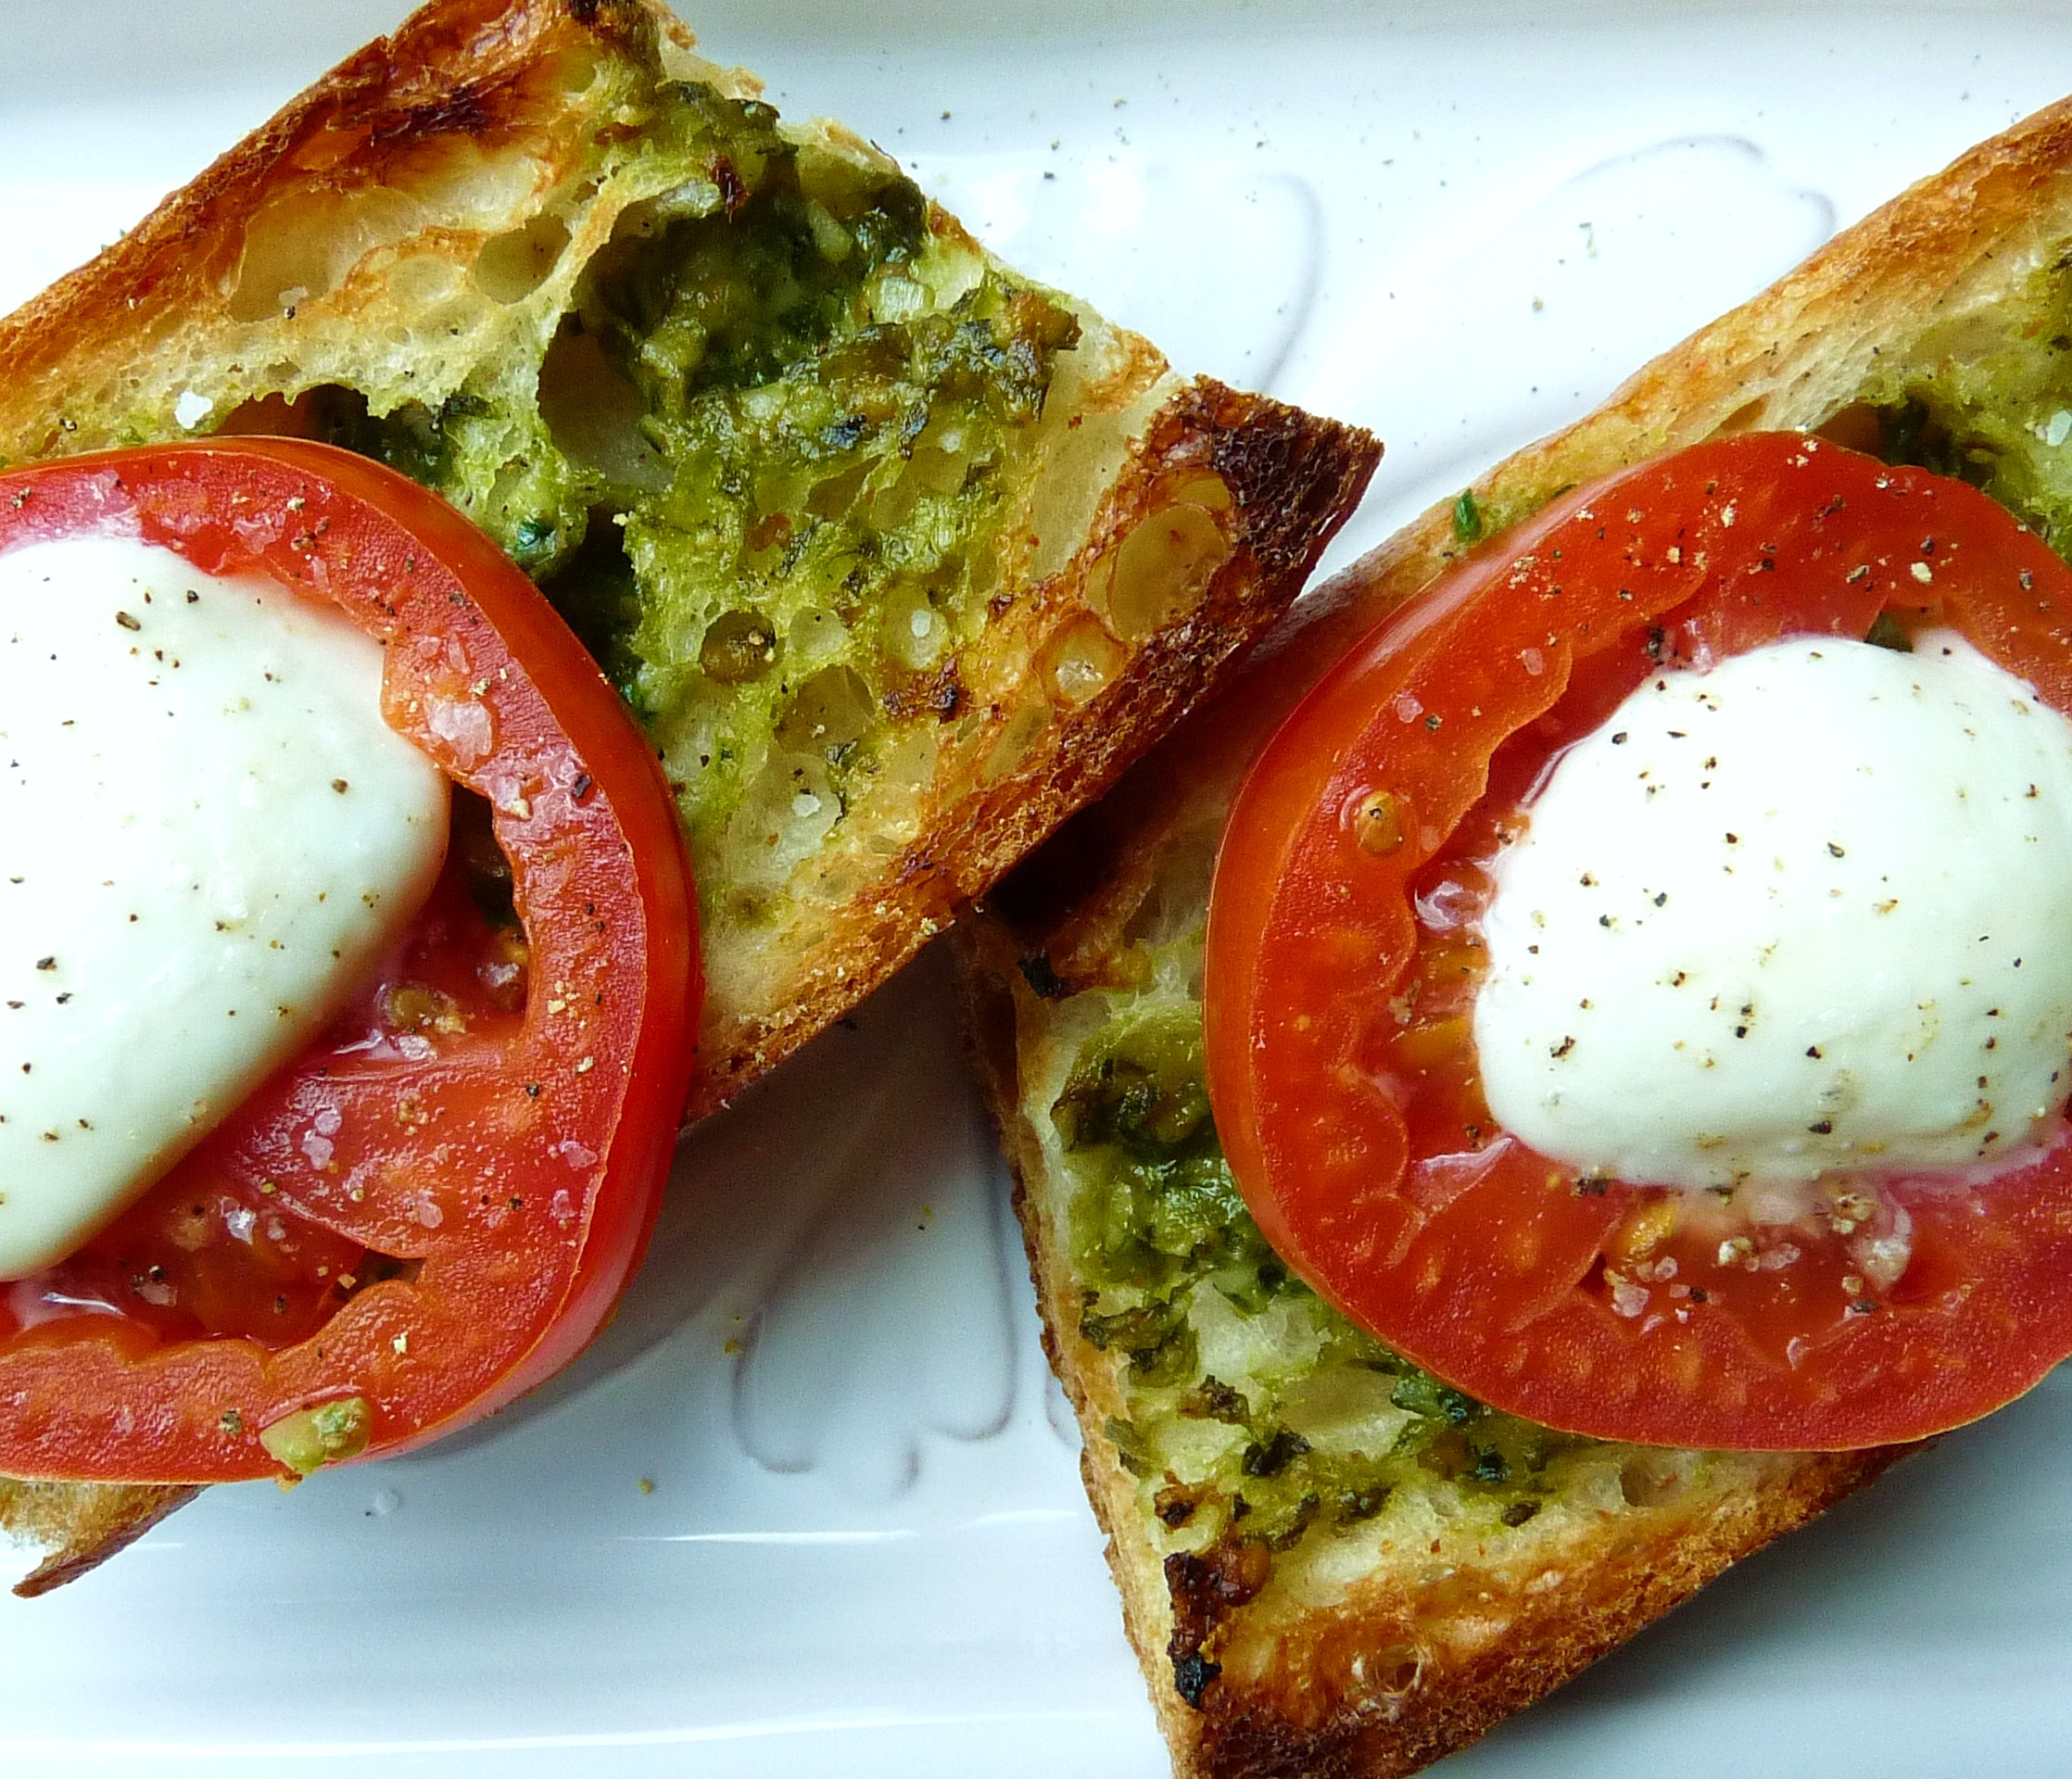 ramp pesto on toasted baguette